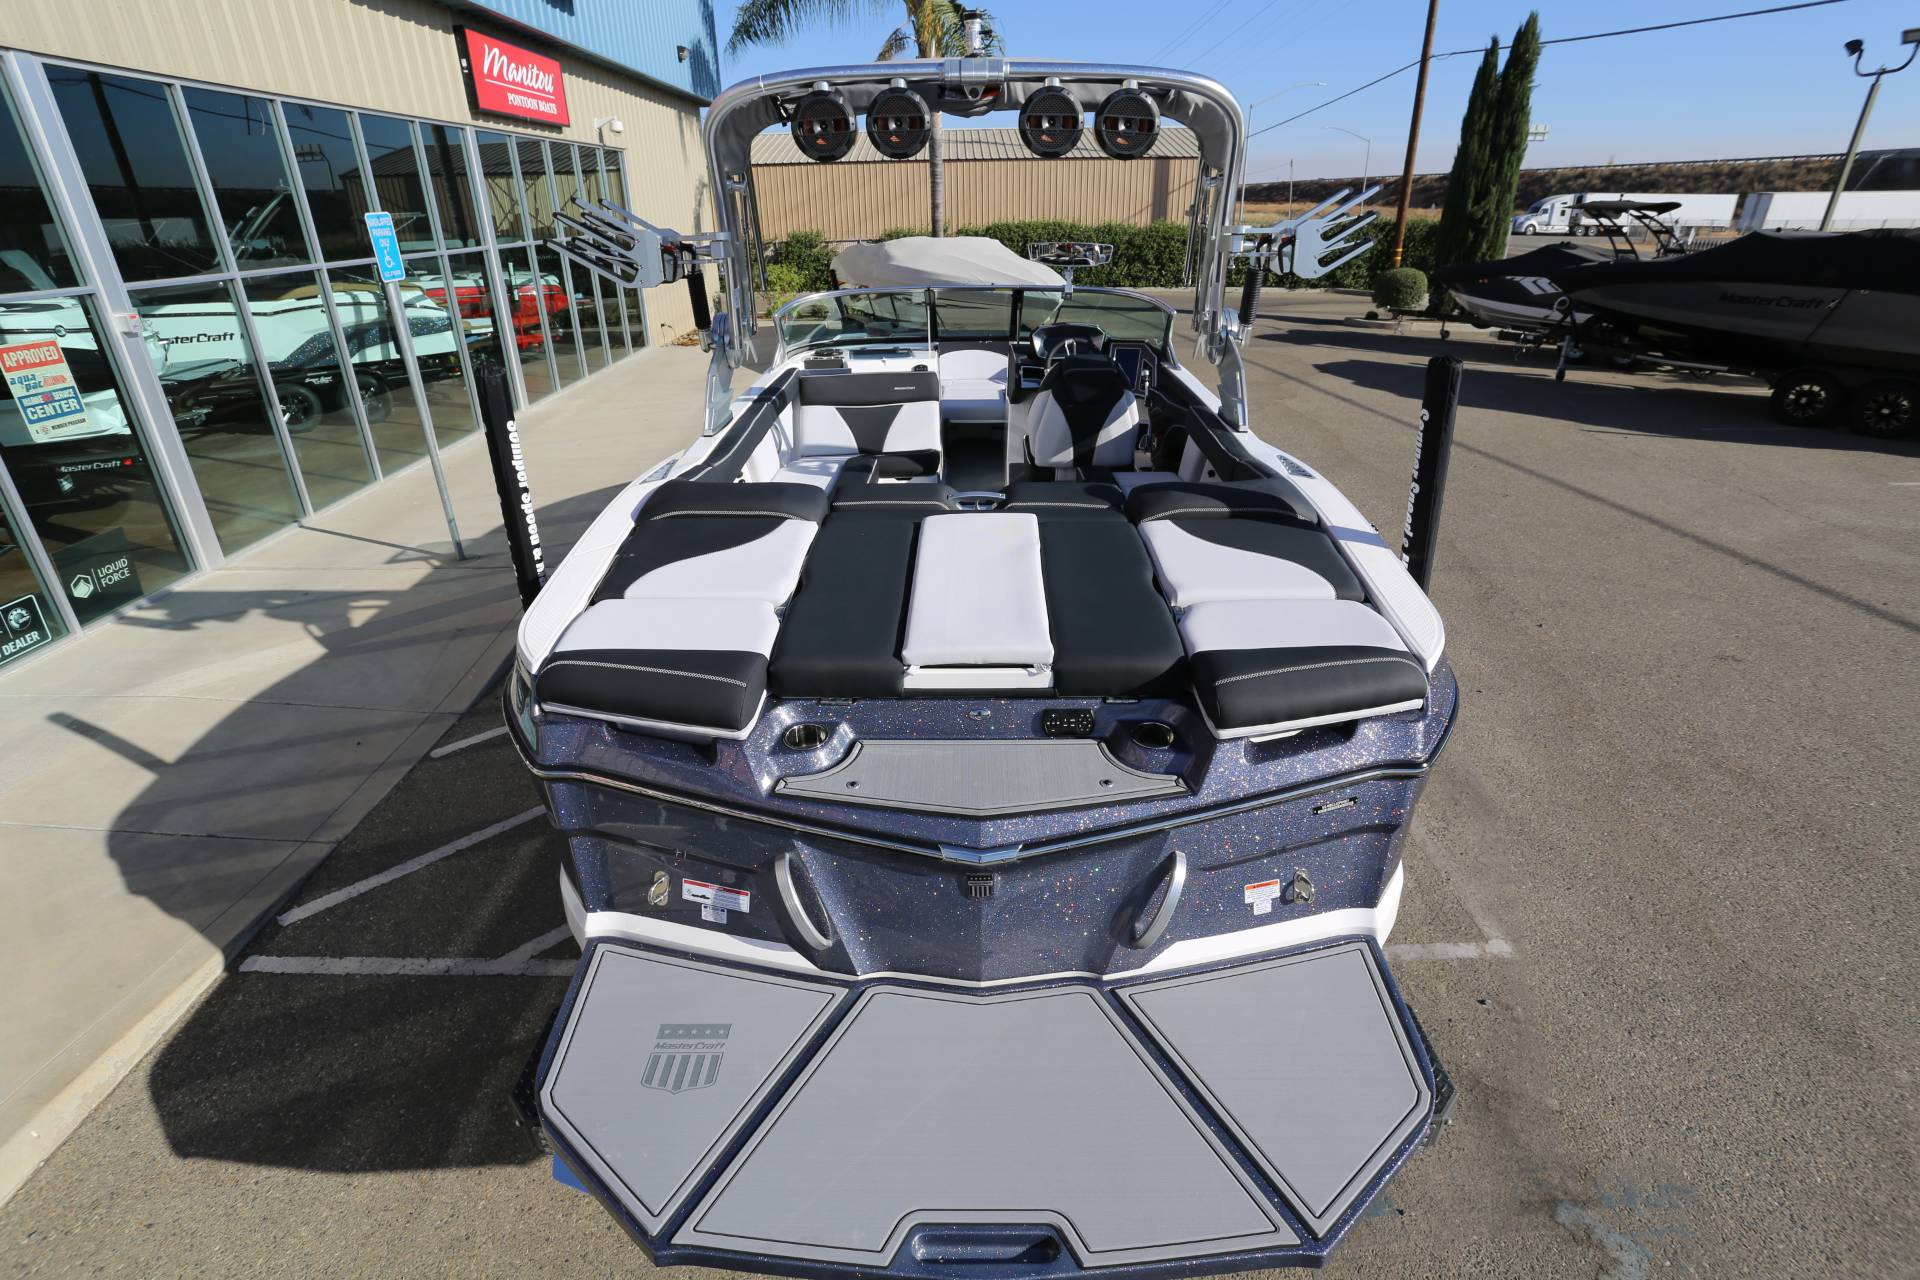 2021 Mastercraft XT22 in Madera, California - Photo 9